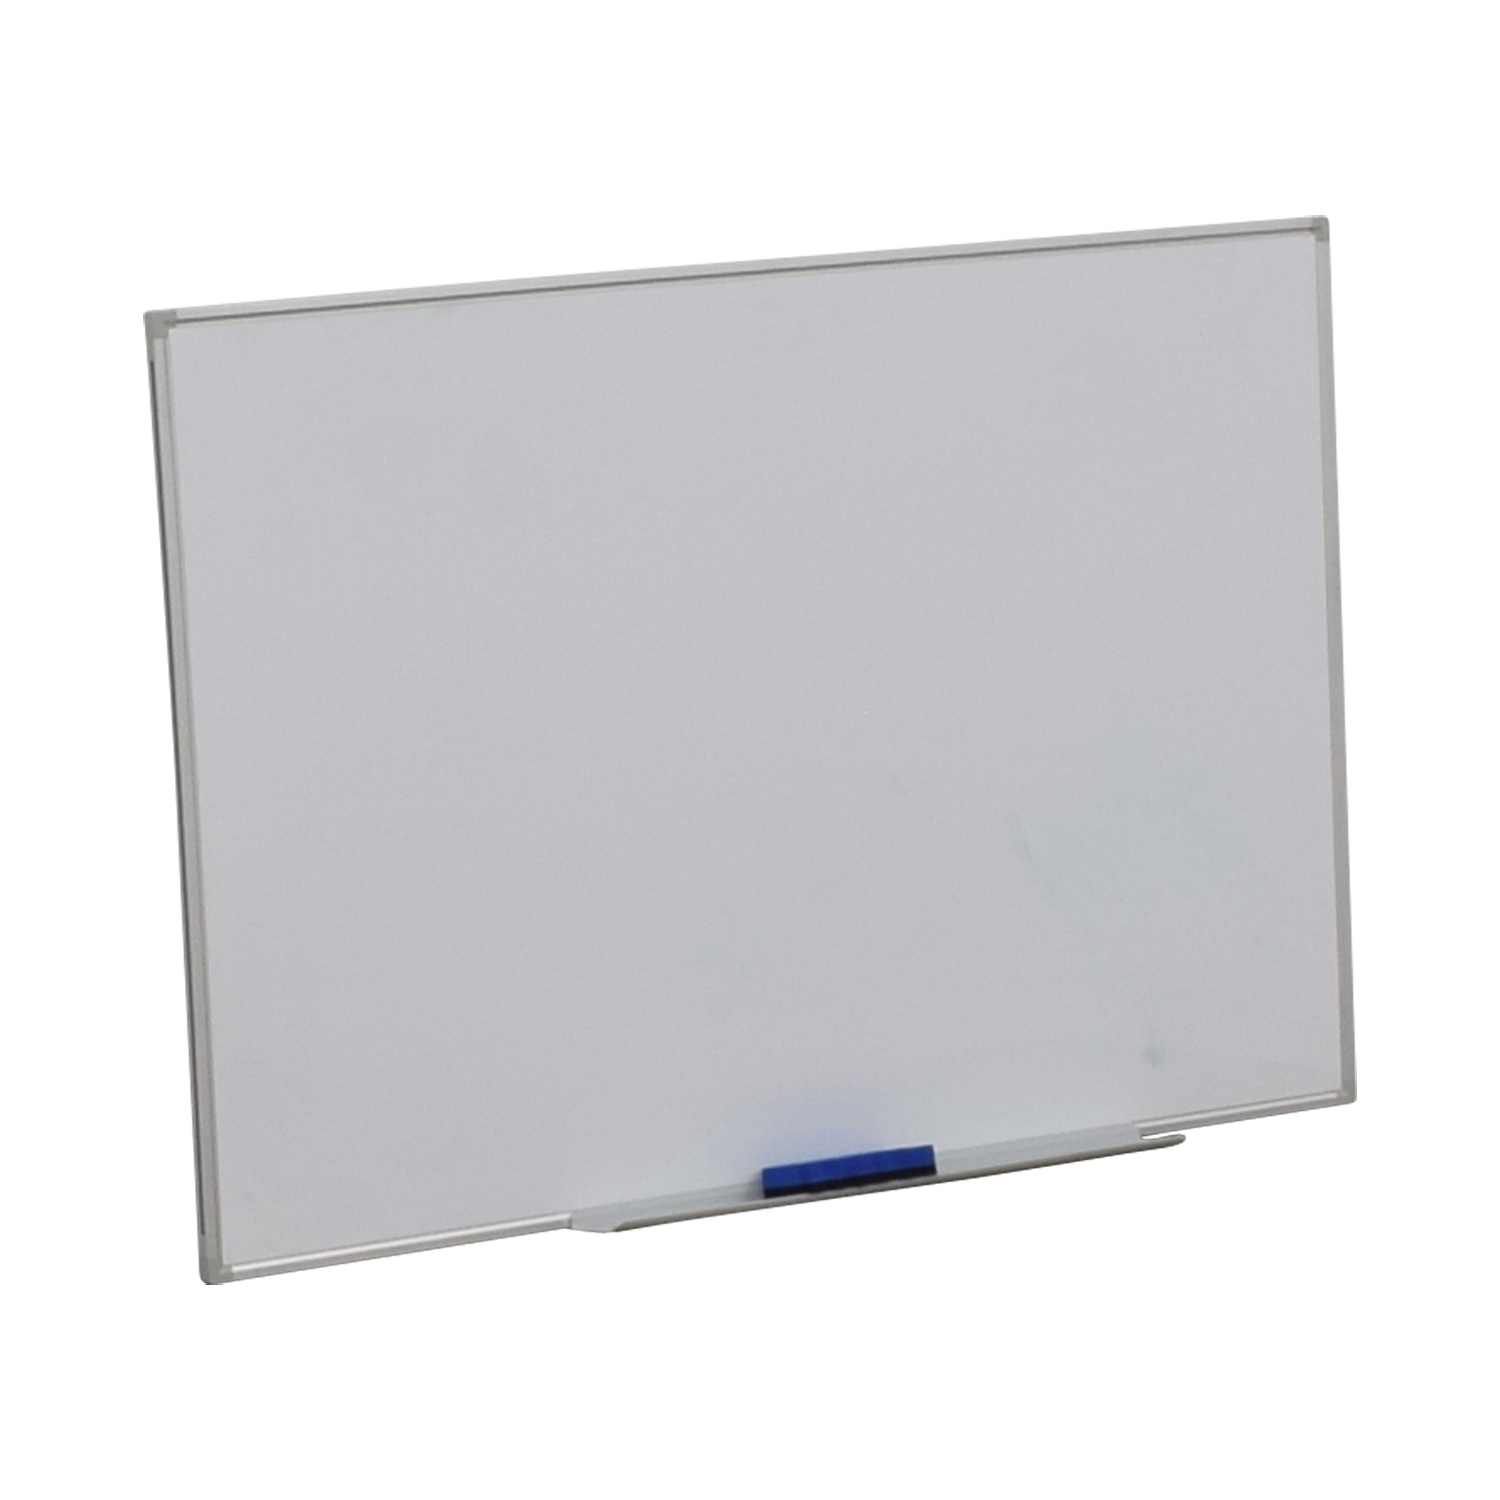 shop OfficePro Slimline Whiteboard OfficePro Slimline